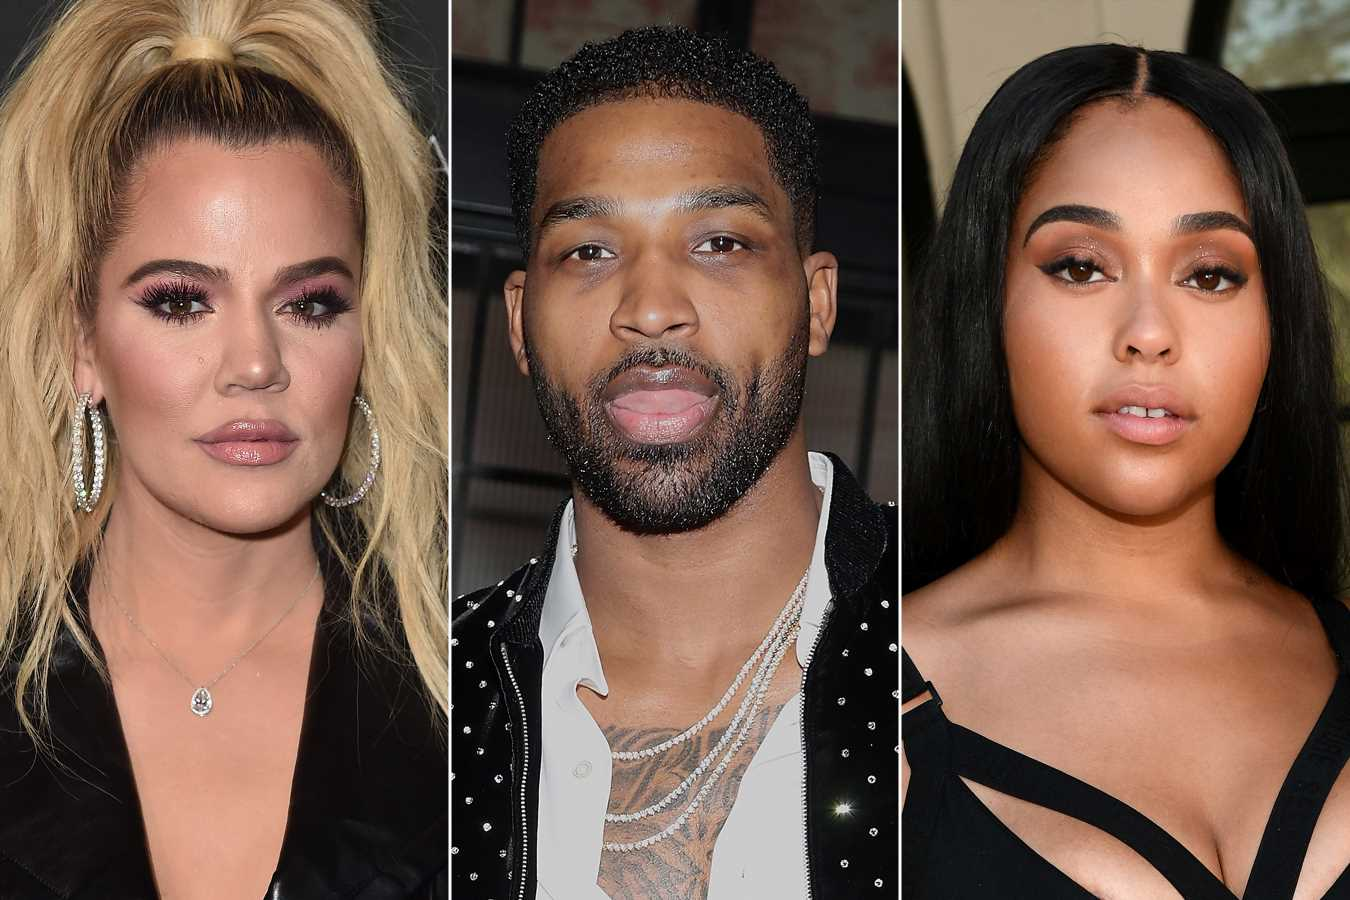 Khloé Kardashian Says She Wants Everyone to 'Move On' from the Tristan and Jordyn Cheating Scandal